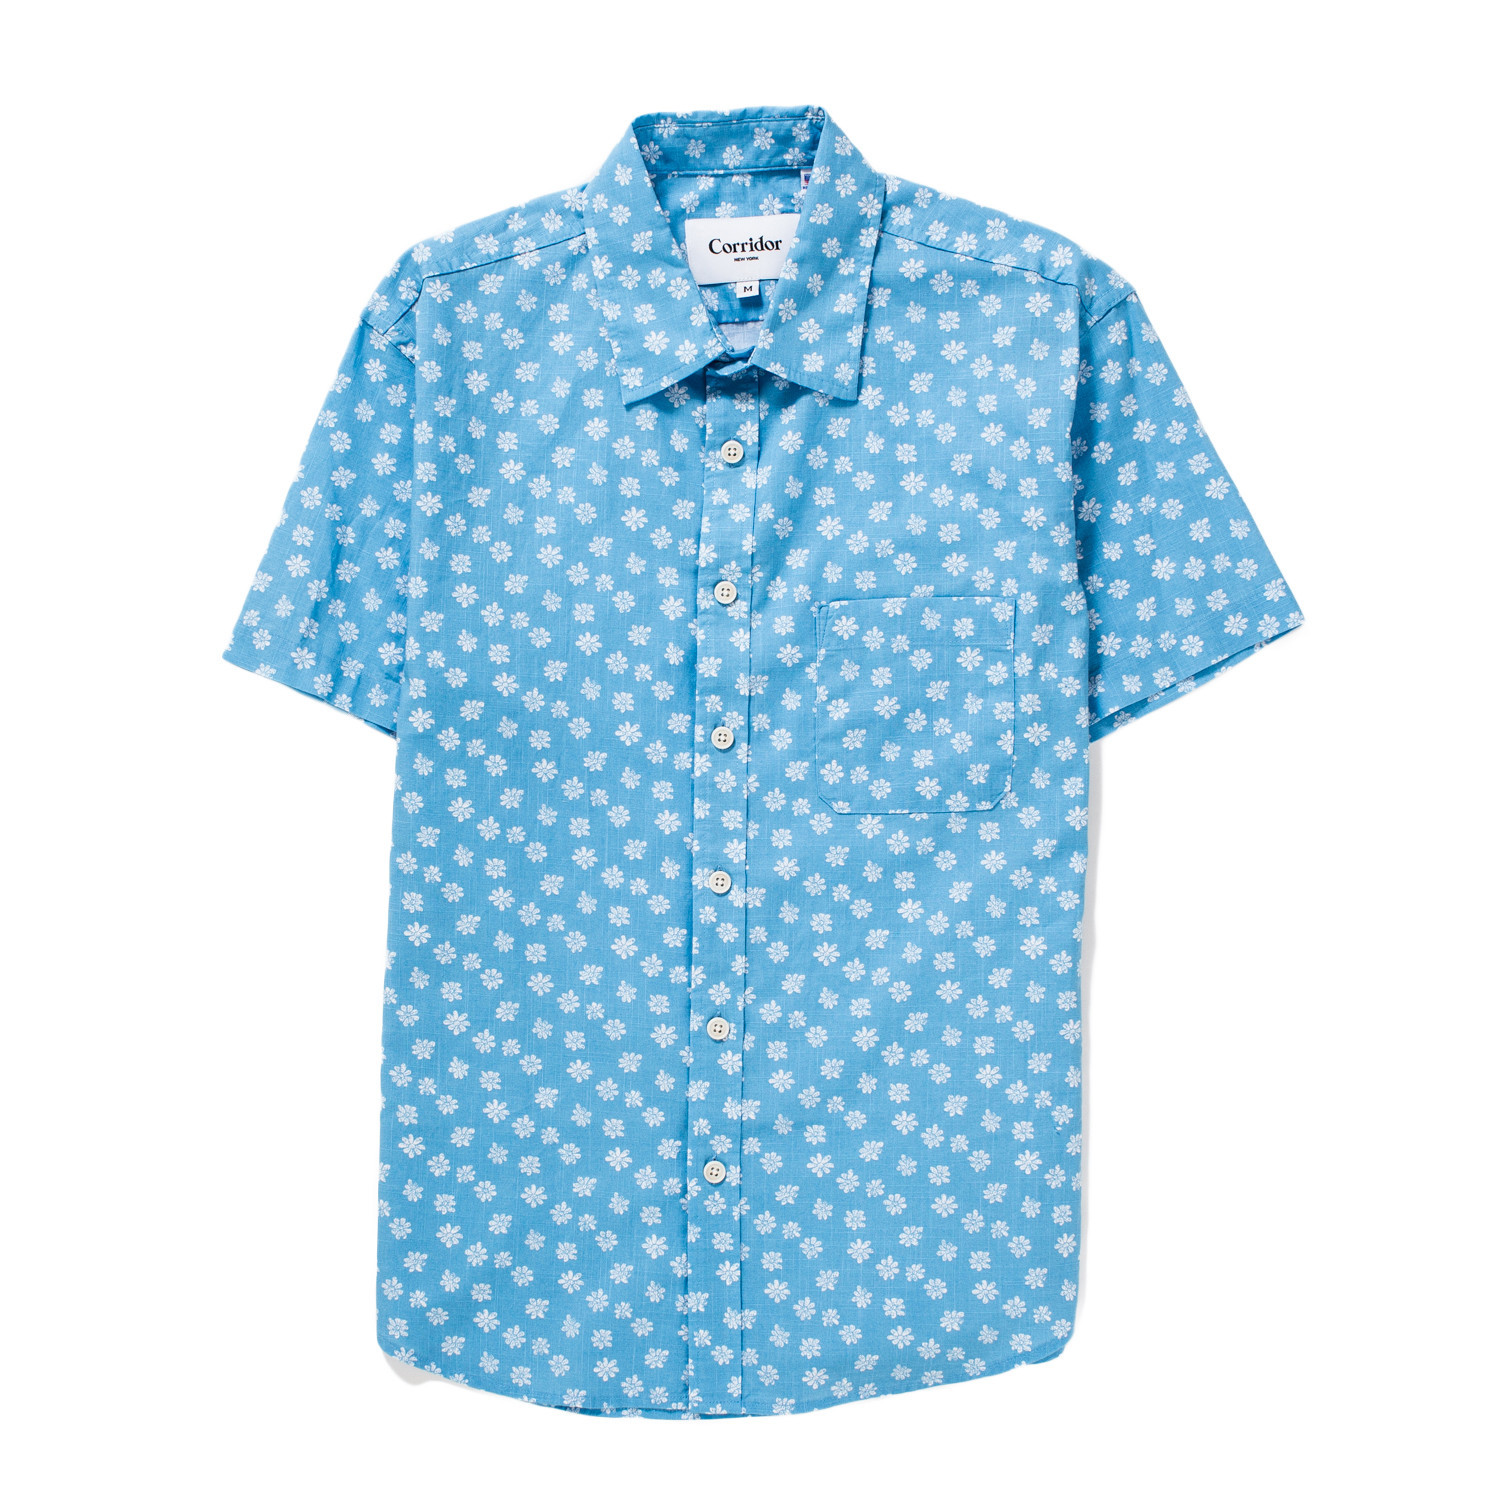 Short-sleeved shirts in fun prints from New York menswear brand Corridor.